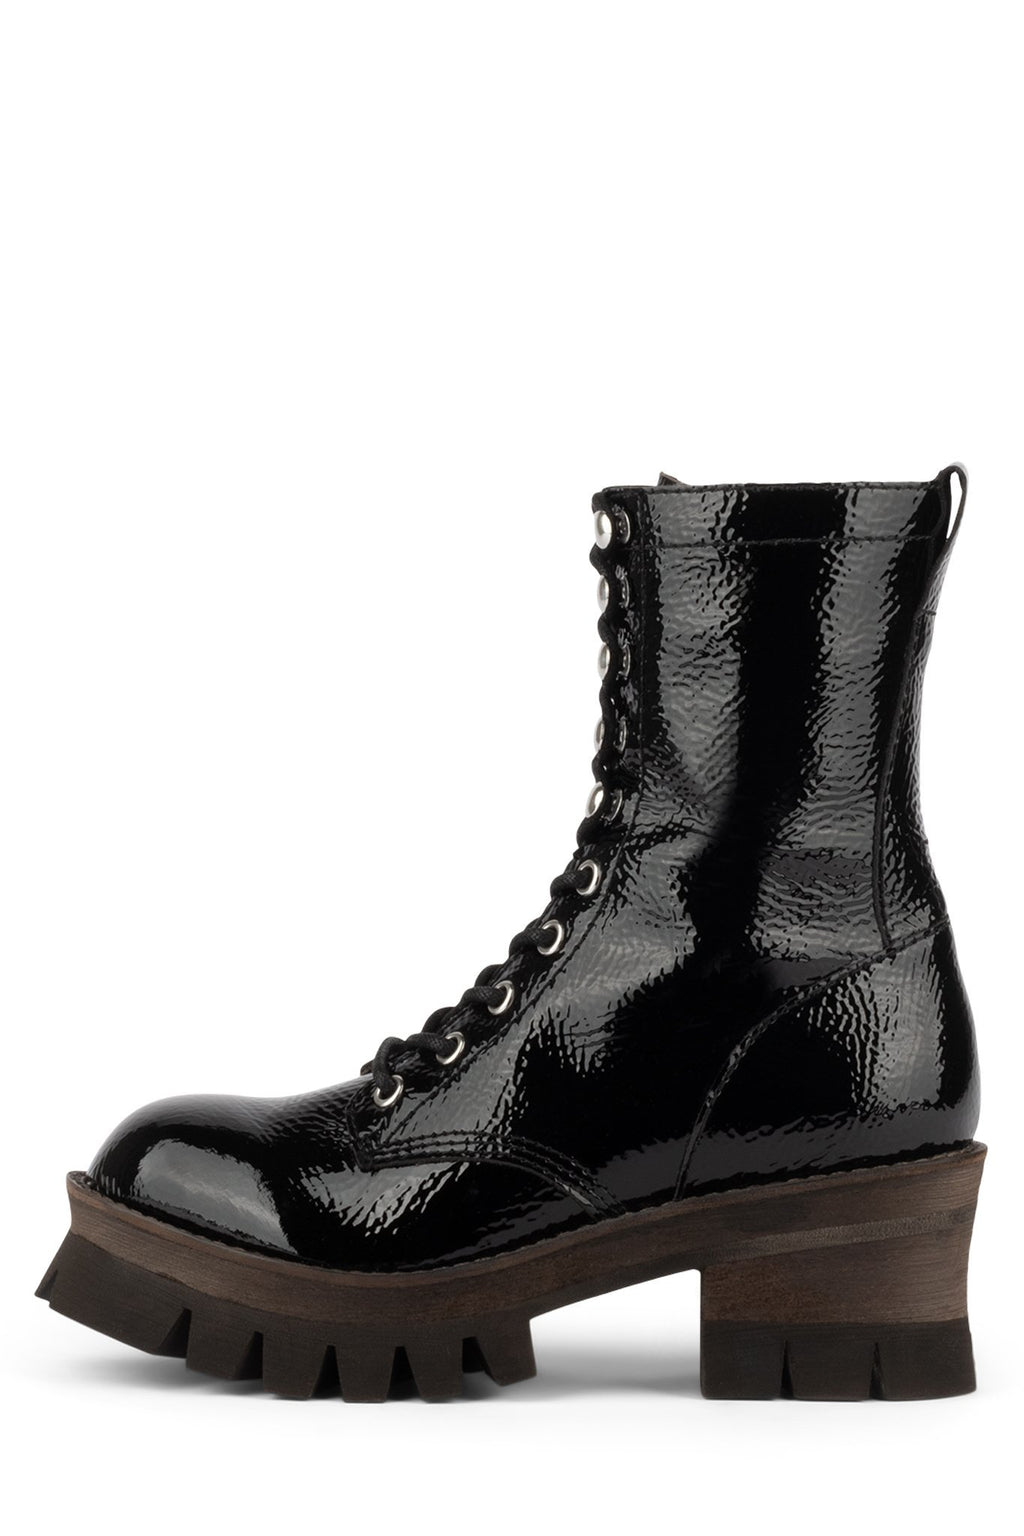 SYCAMORE3H Boot Jeffrey Campbell Black Crinkle Patent 6